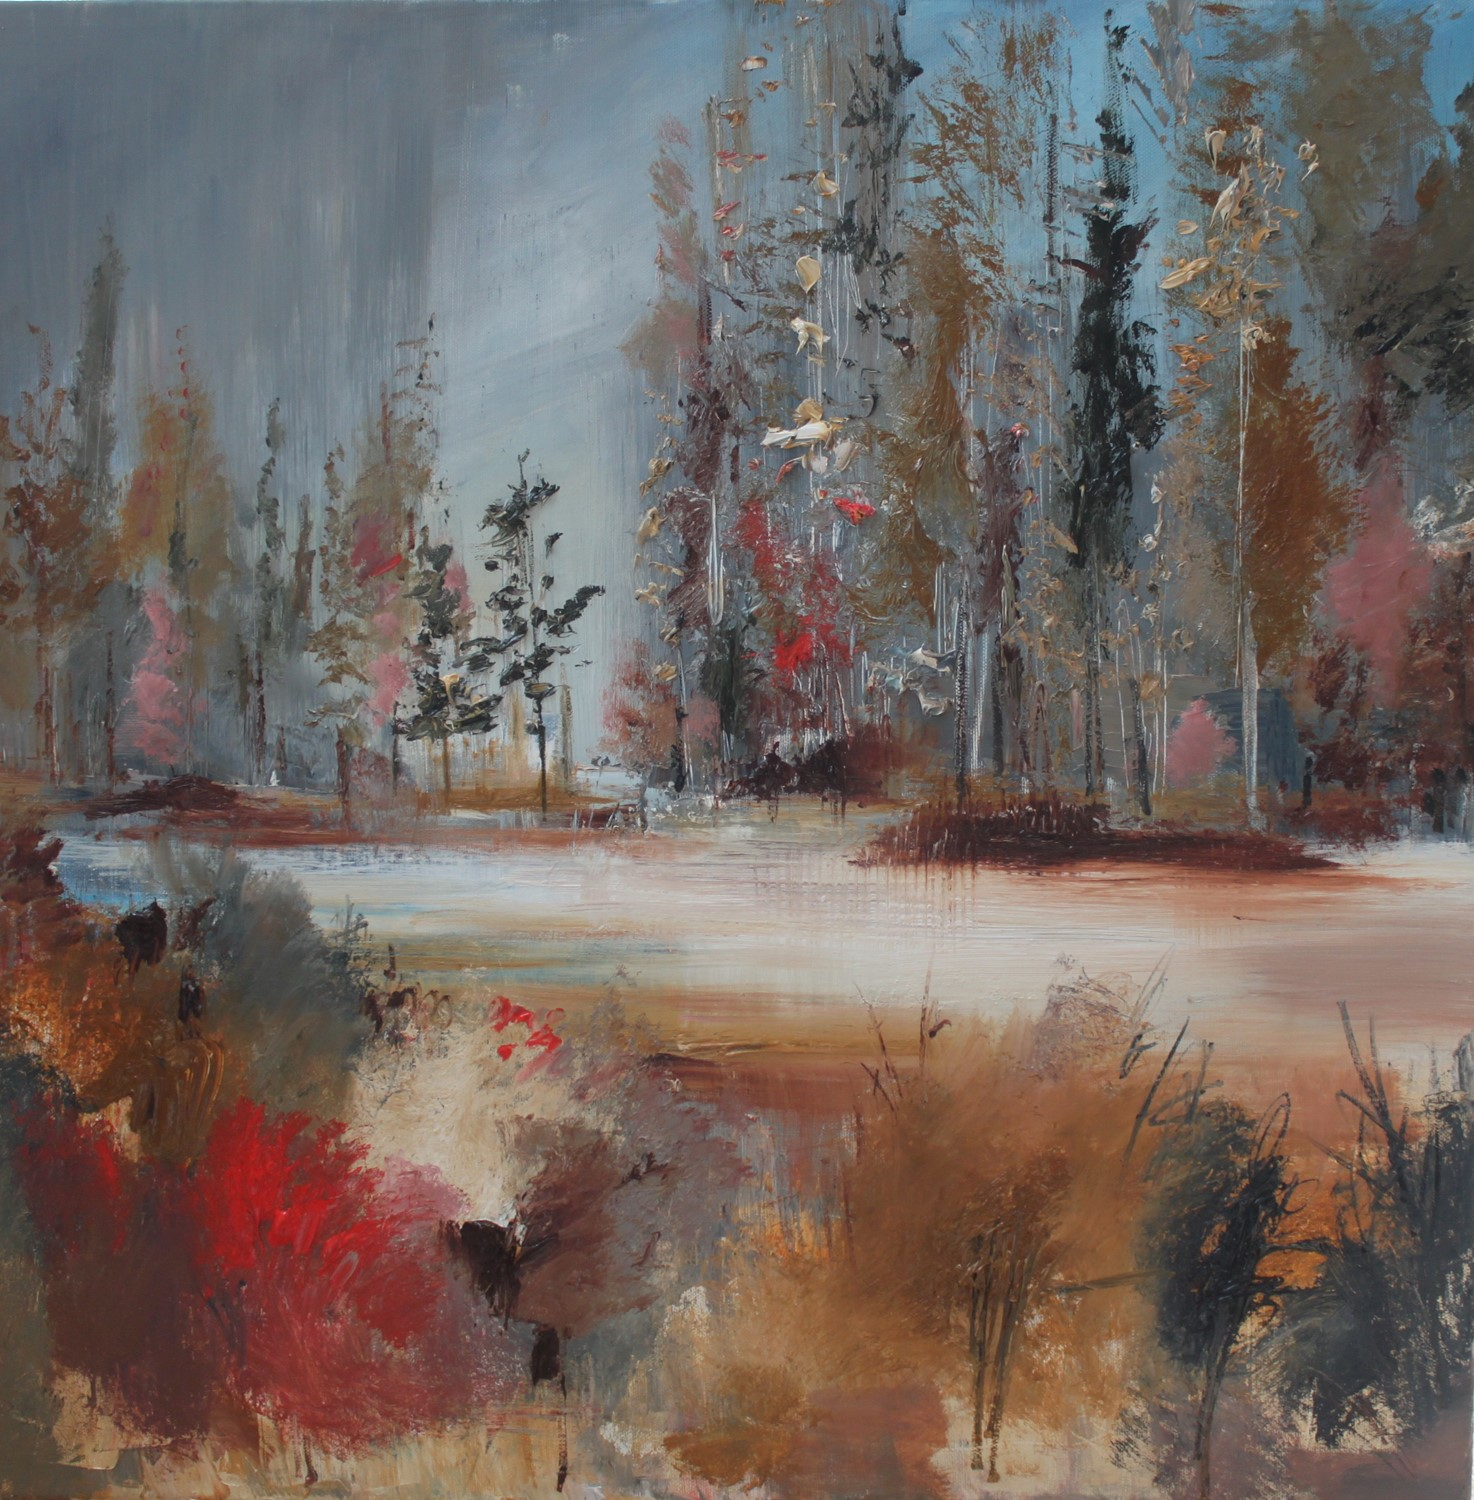 'Forrest Shades' by artist Rosanne Barr